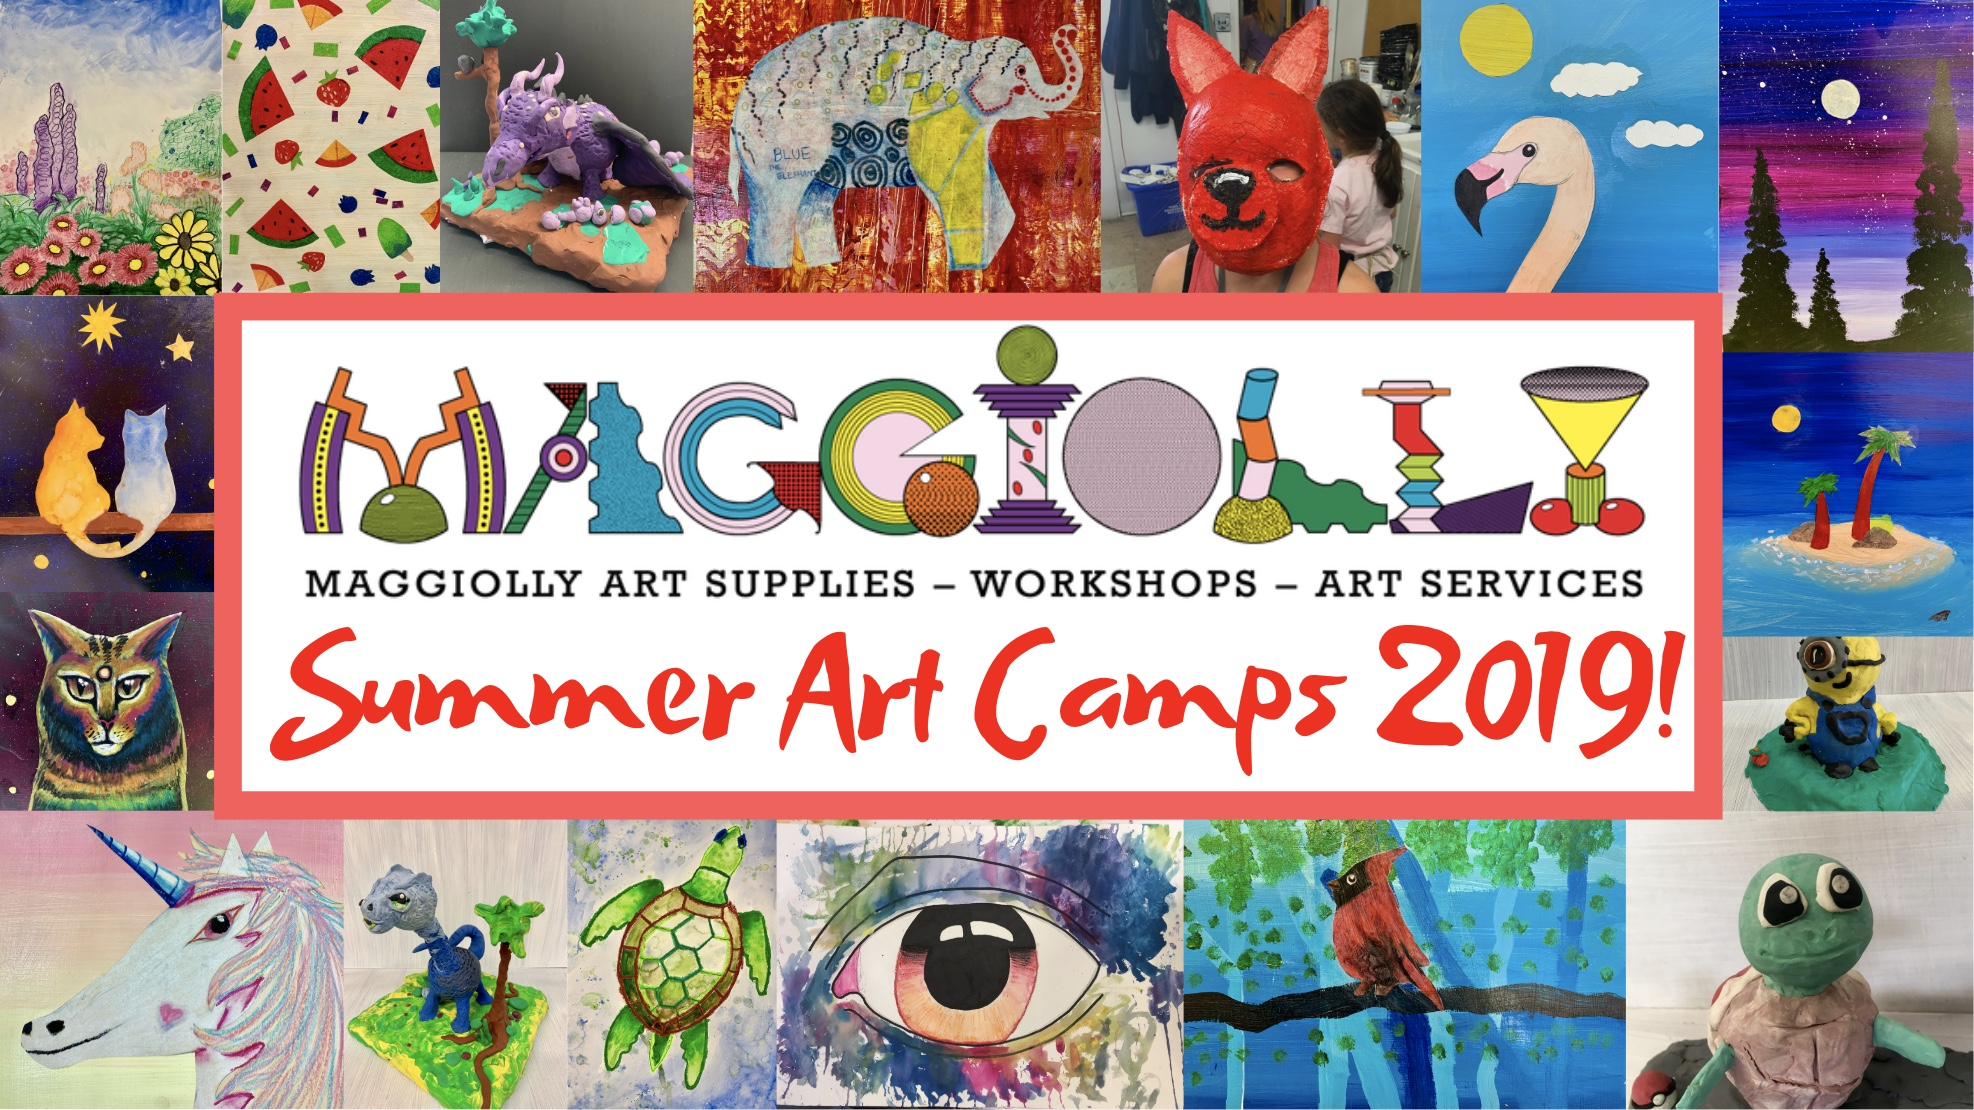 Summer Art Camps 2019 IMG.jpeg